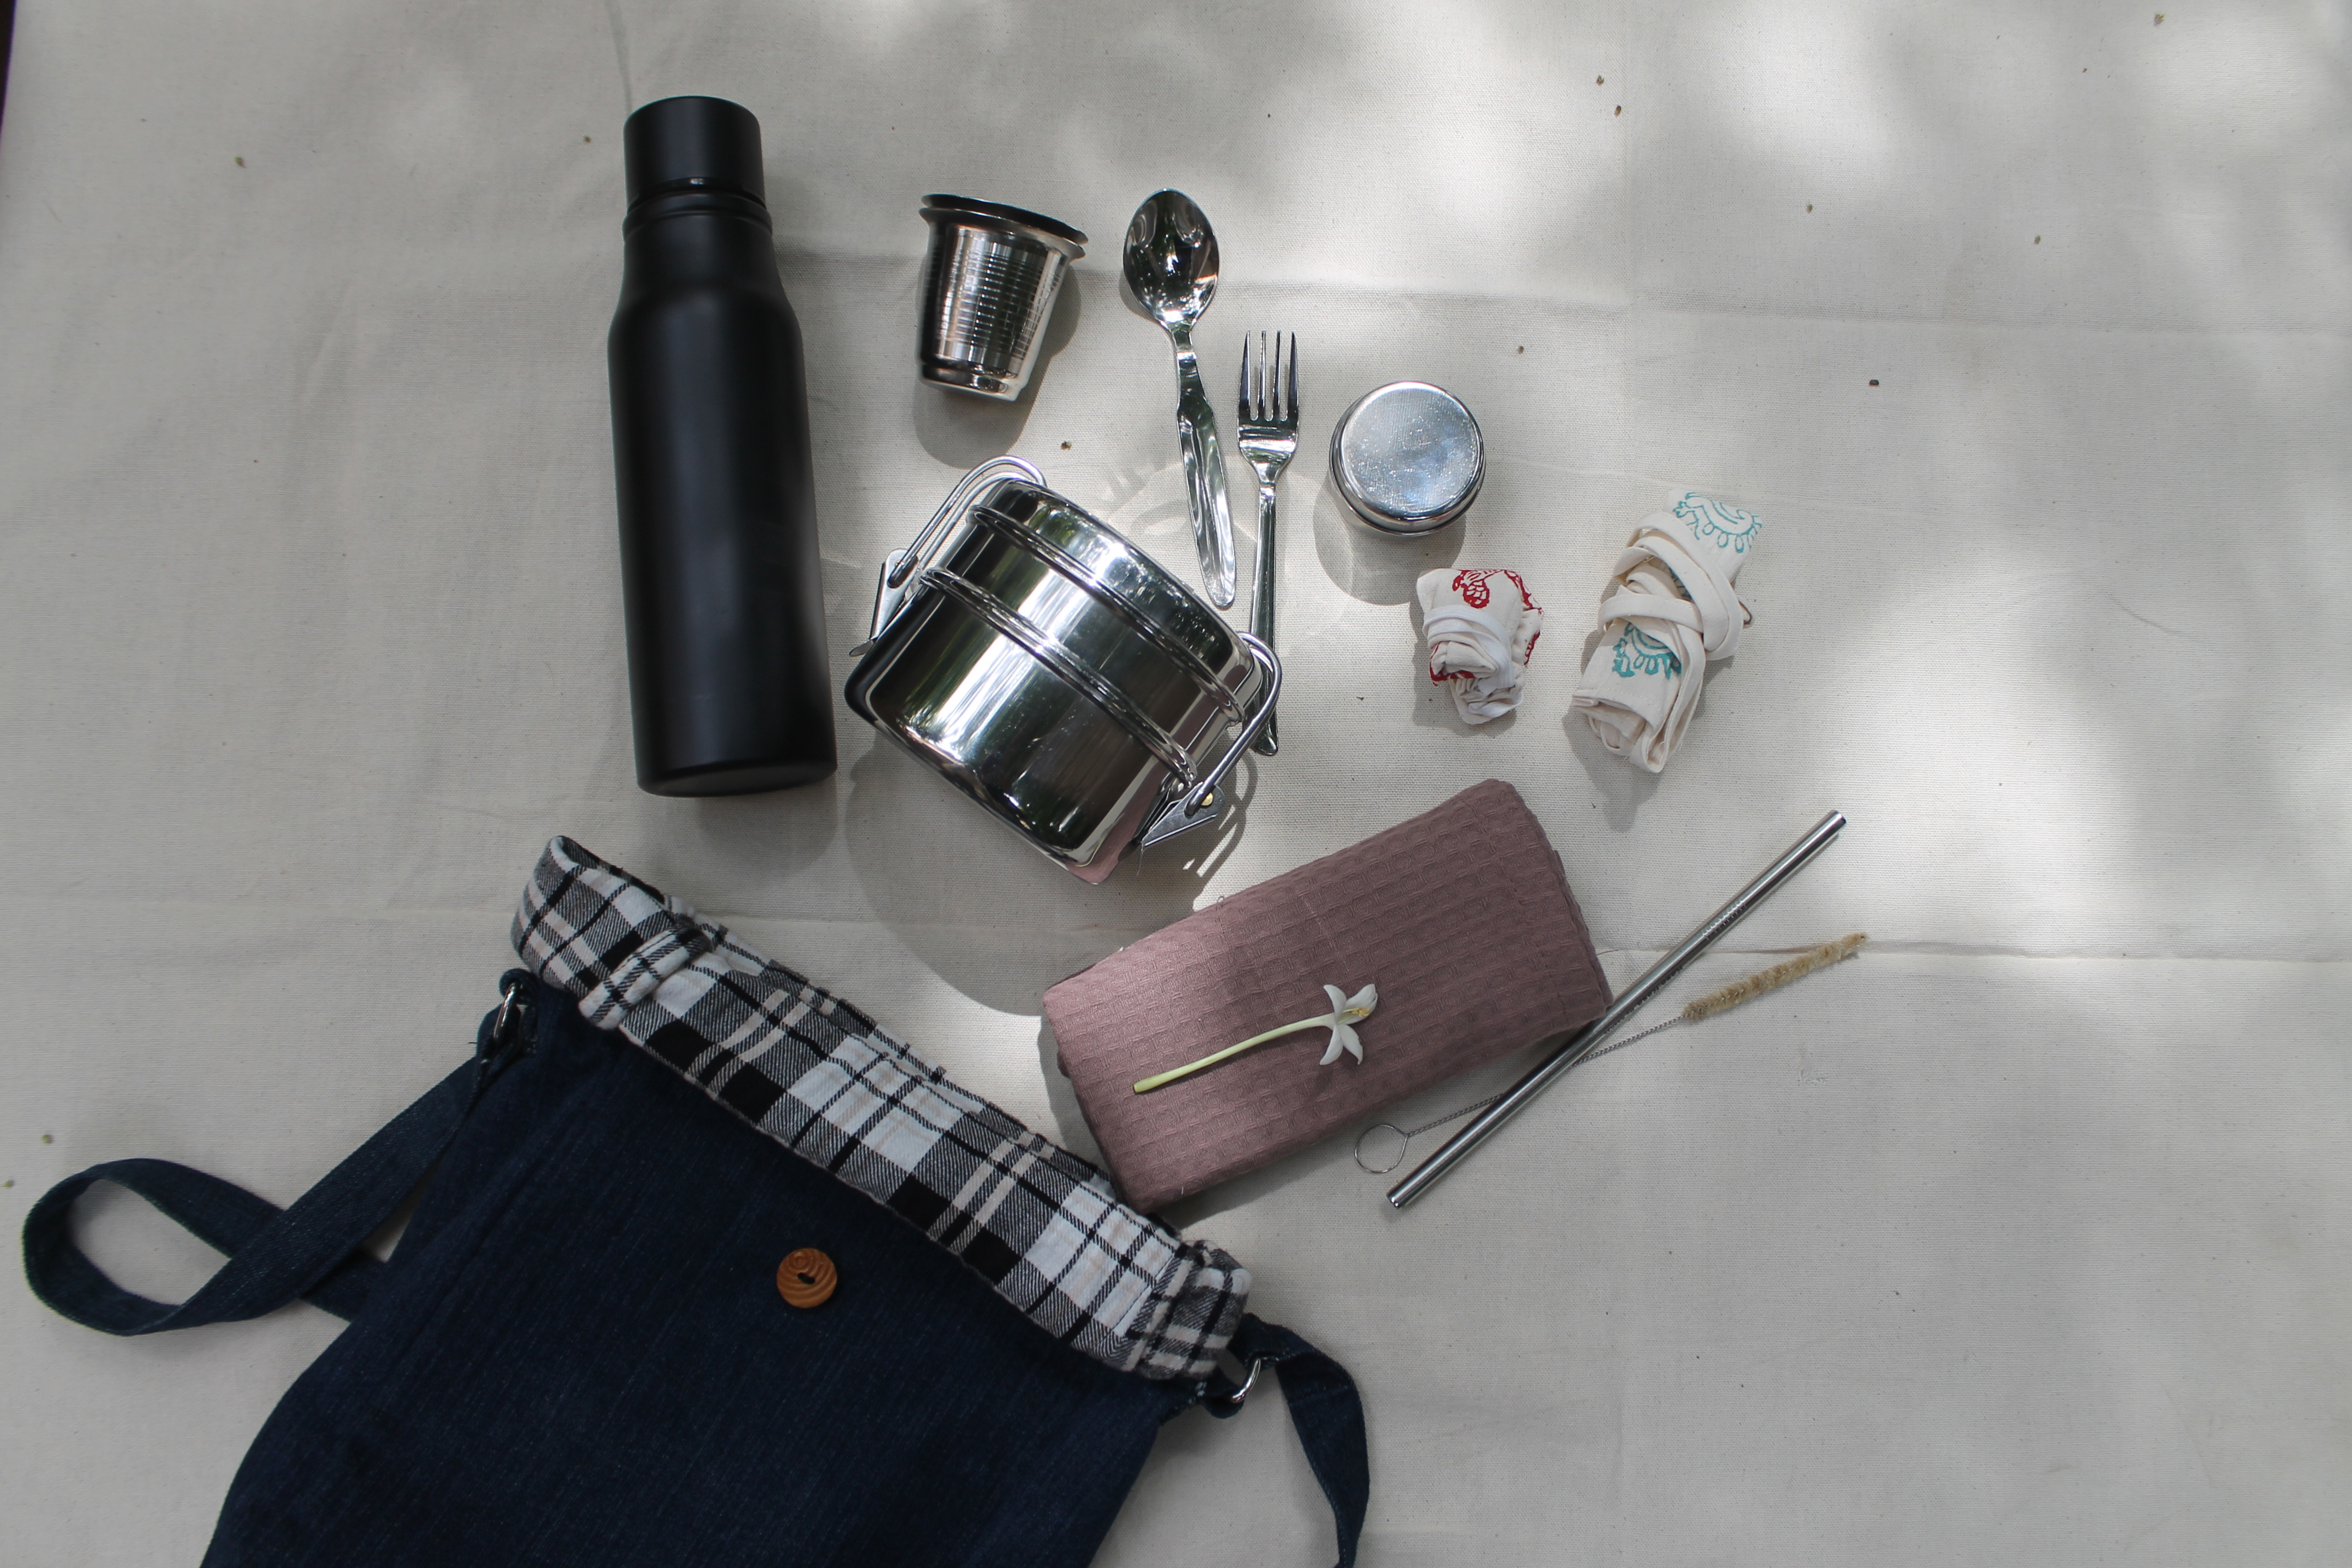 Waste Recycled Products – ZERO-WASTE TRAVEL KIT